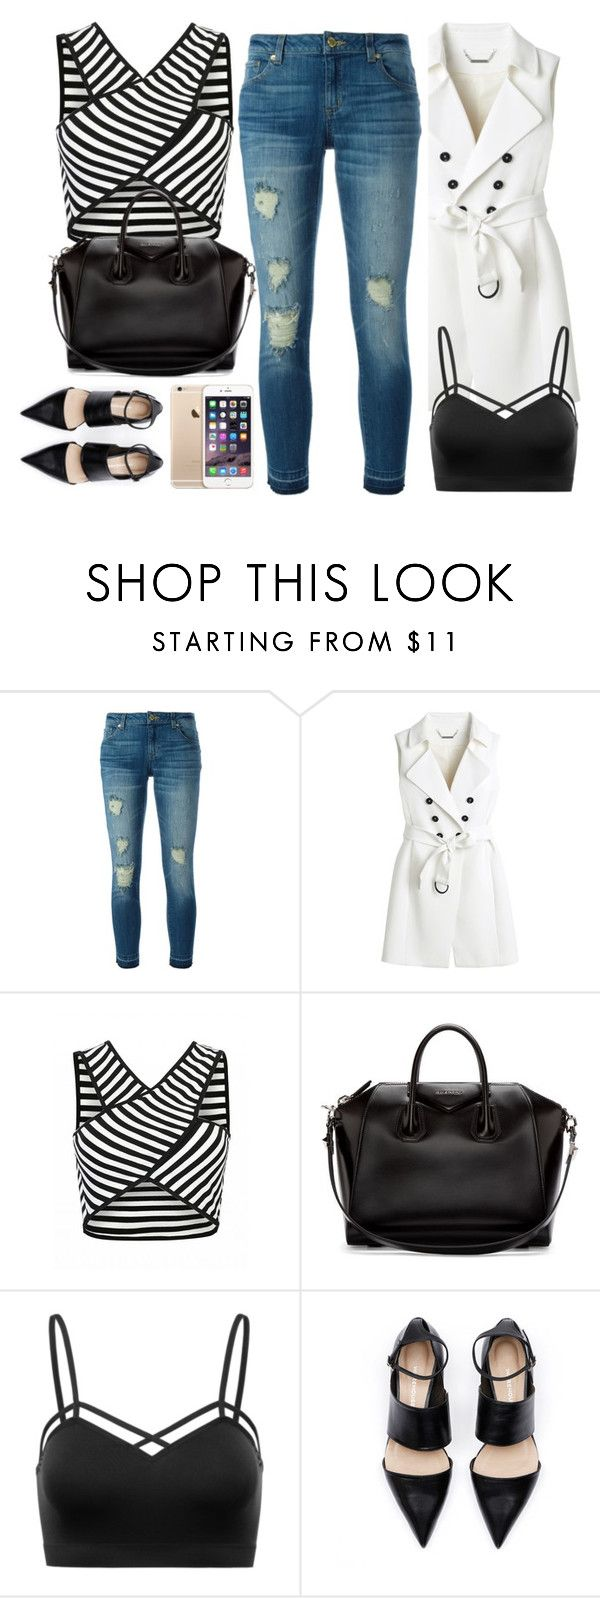 """""""Untitled #858"""" by terryxx ❤ liked on Polyvore featuring MICHAEL Michael Kors, White House Black Market, Givenchy, blackandwhite, strips and stripedshirt"""